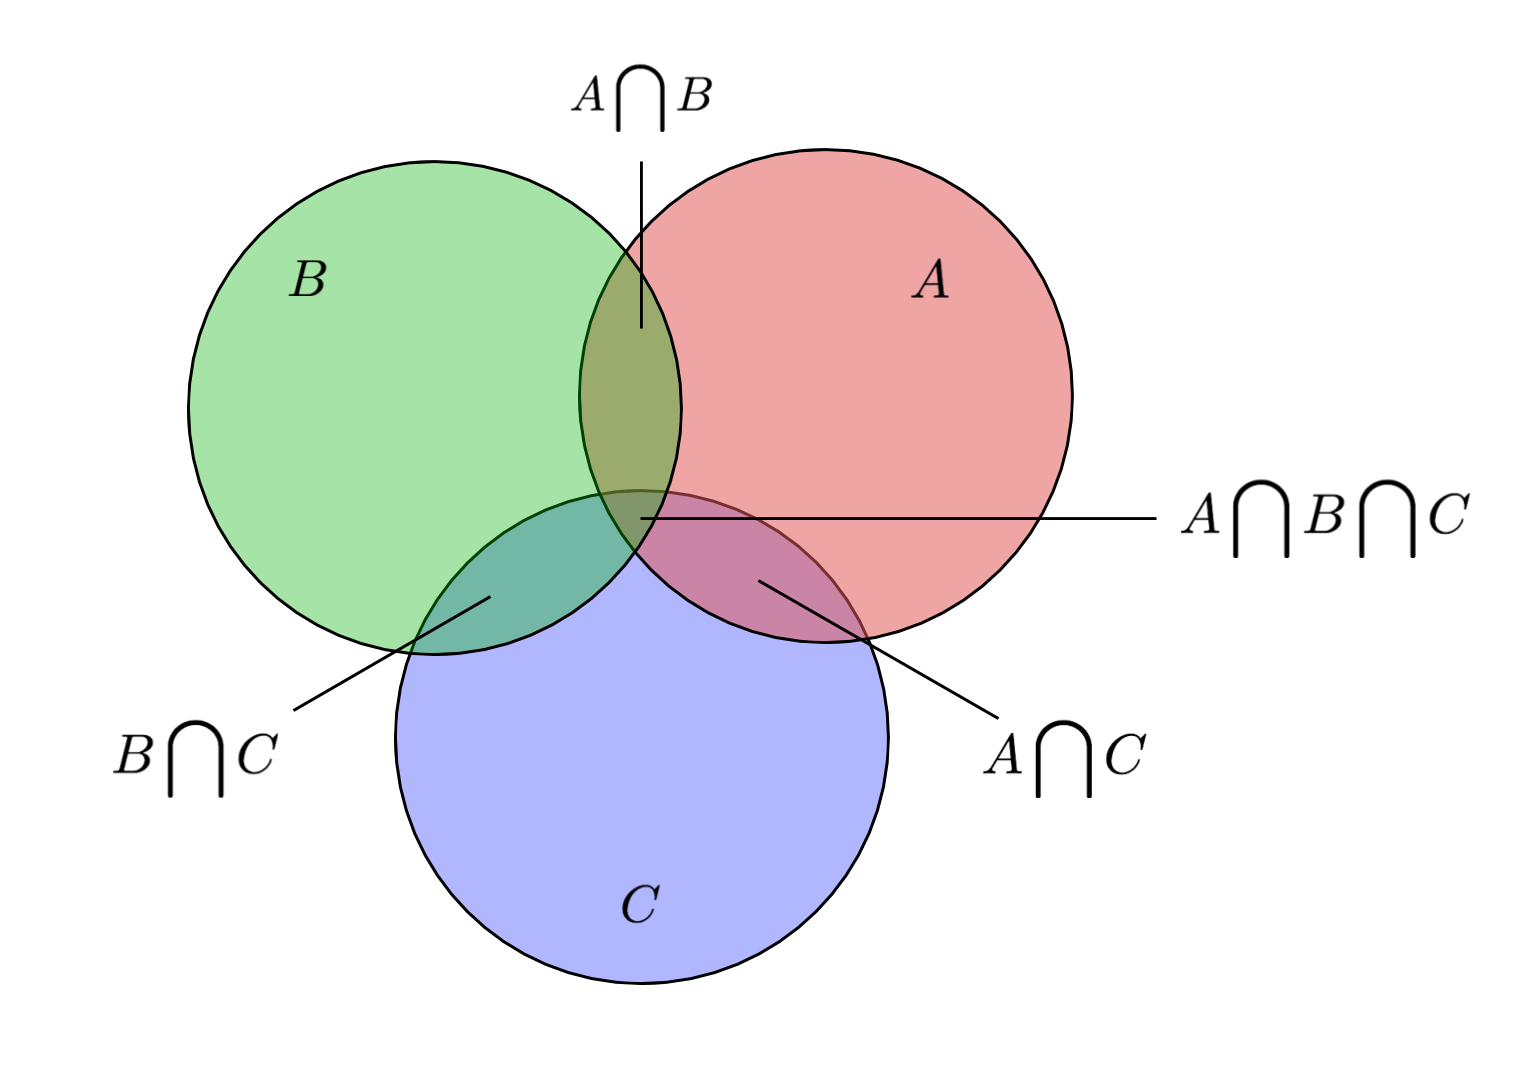 Project Euler Problem 1 Venn Diagram